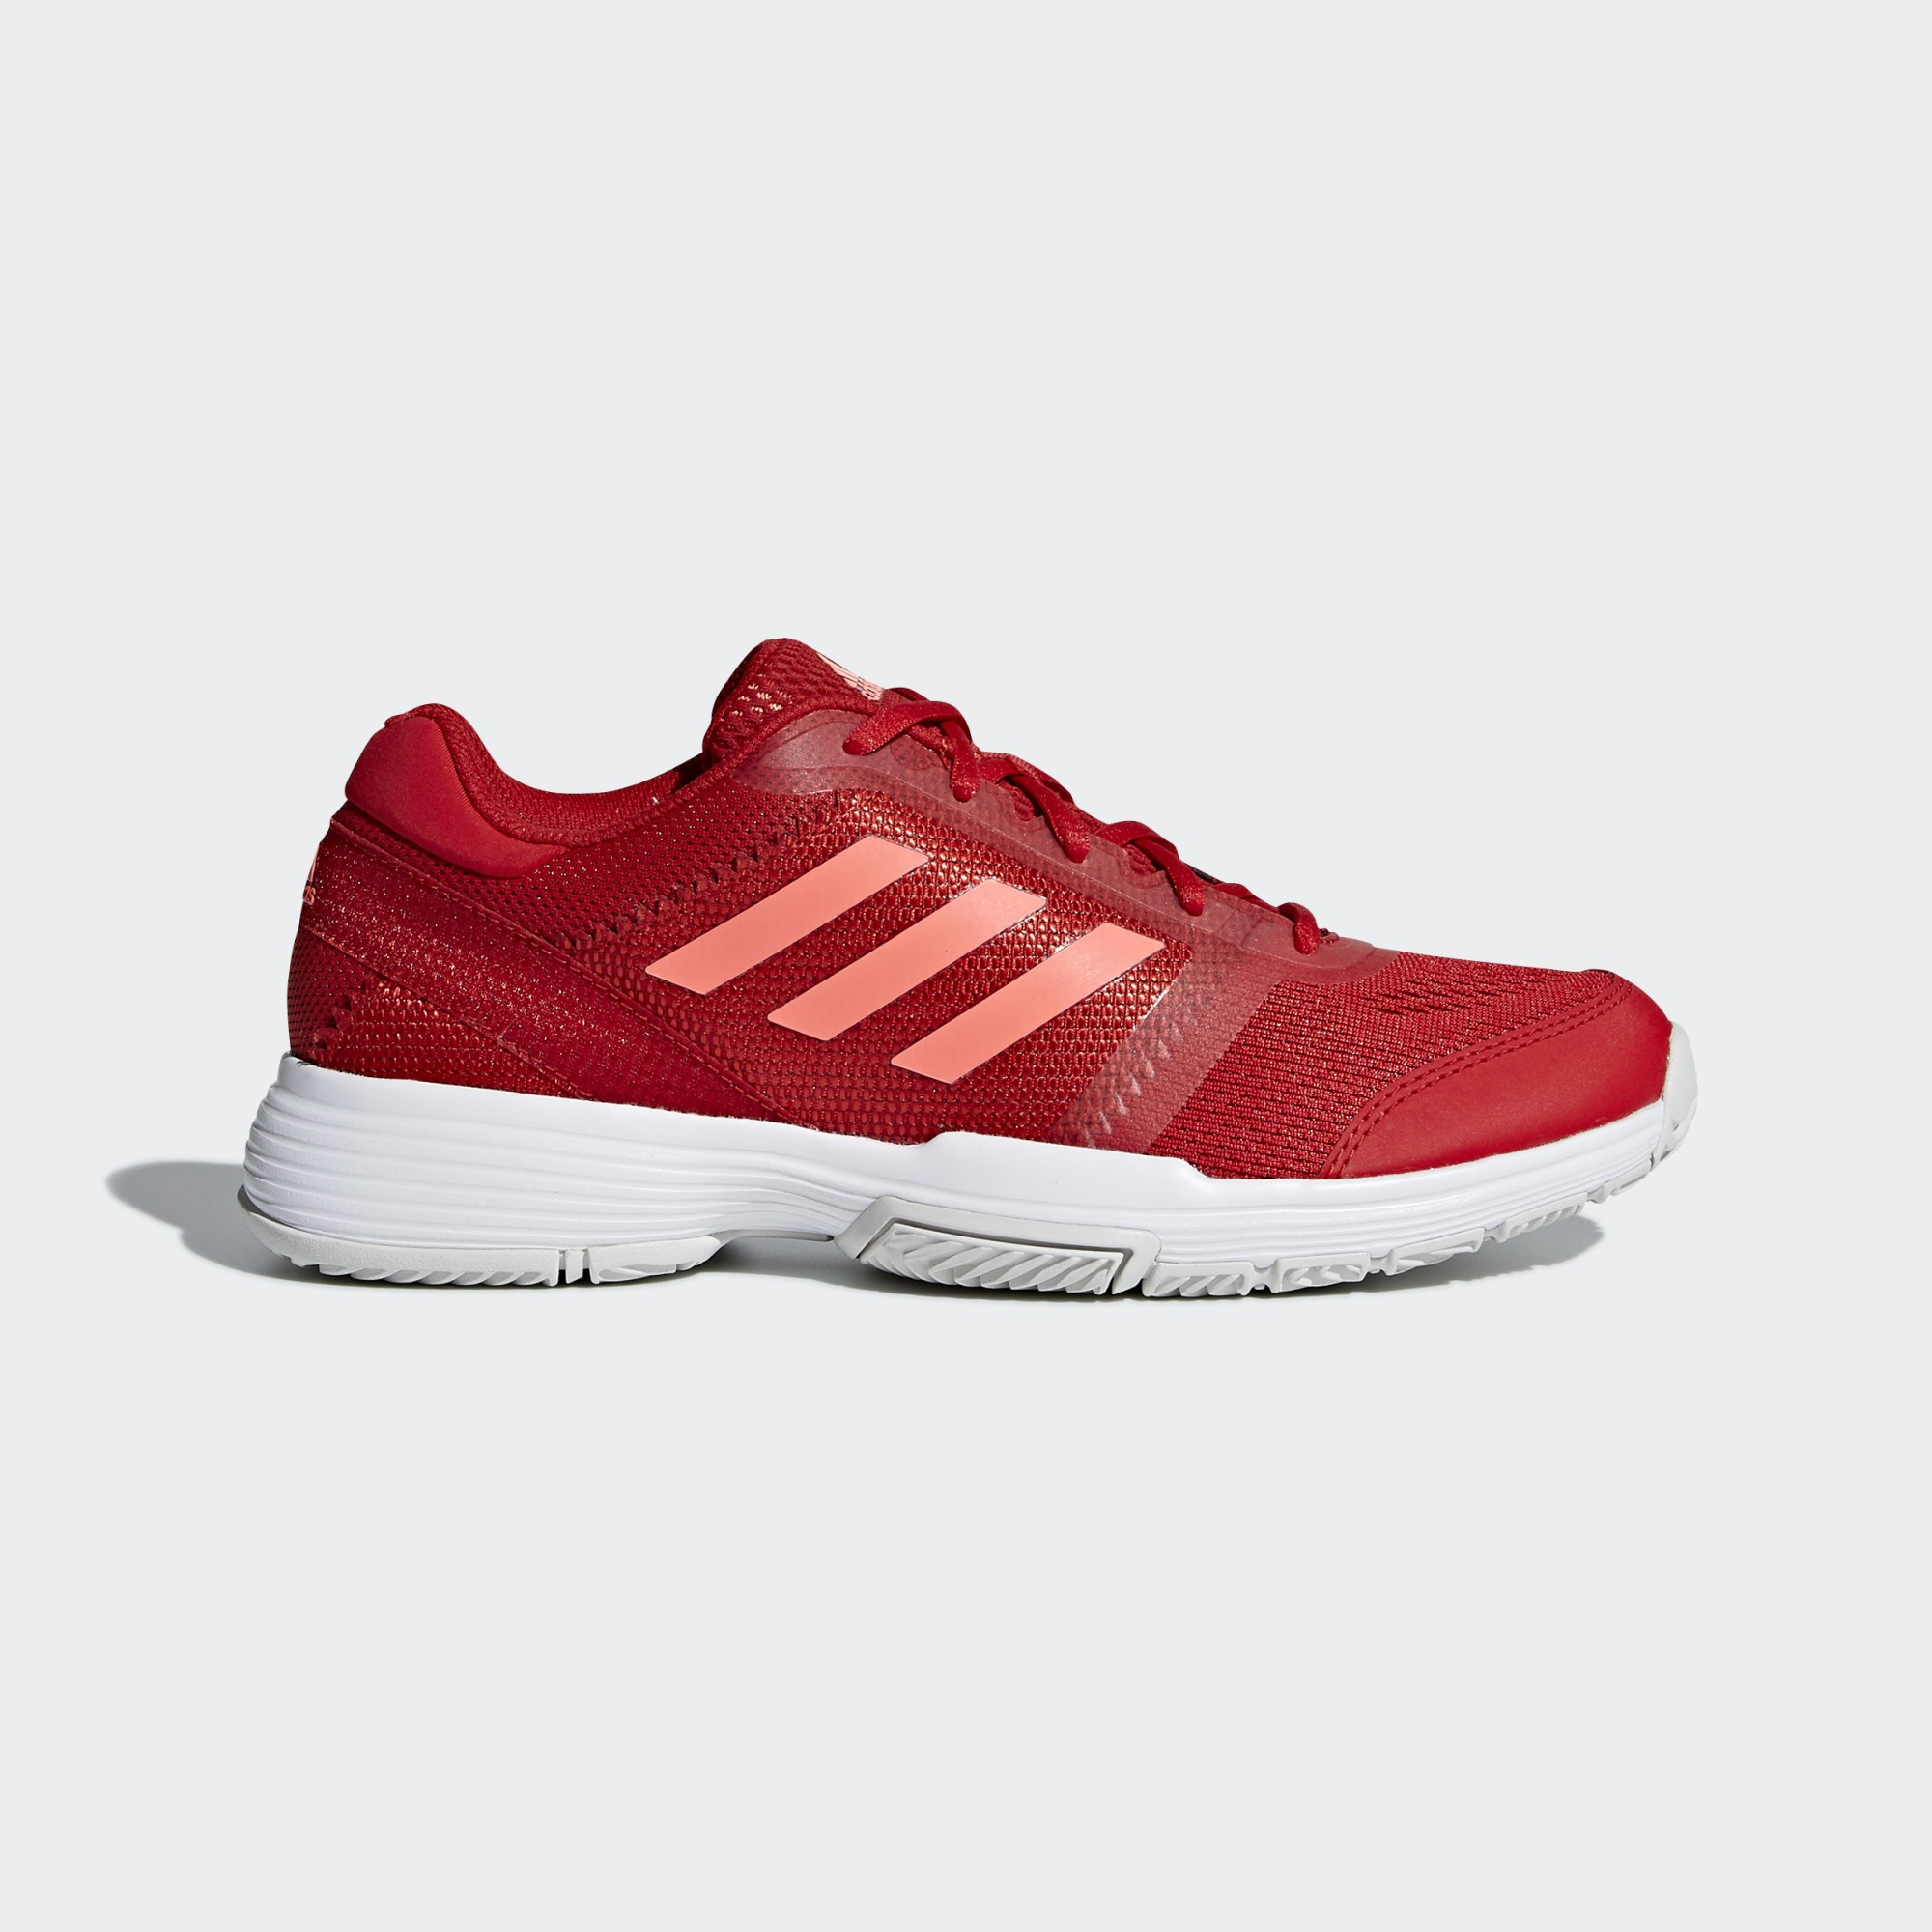 Adidas Barricade Club Femme Rouge Chaussures De Tennis Femmes Chaussures De Tennis Femme